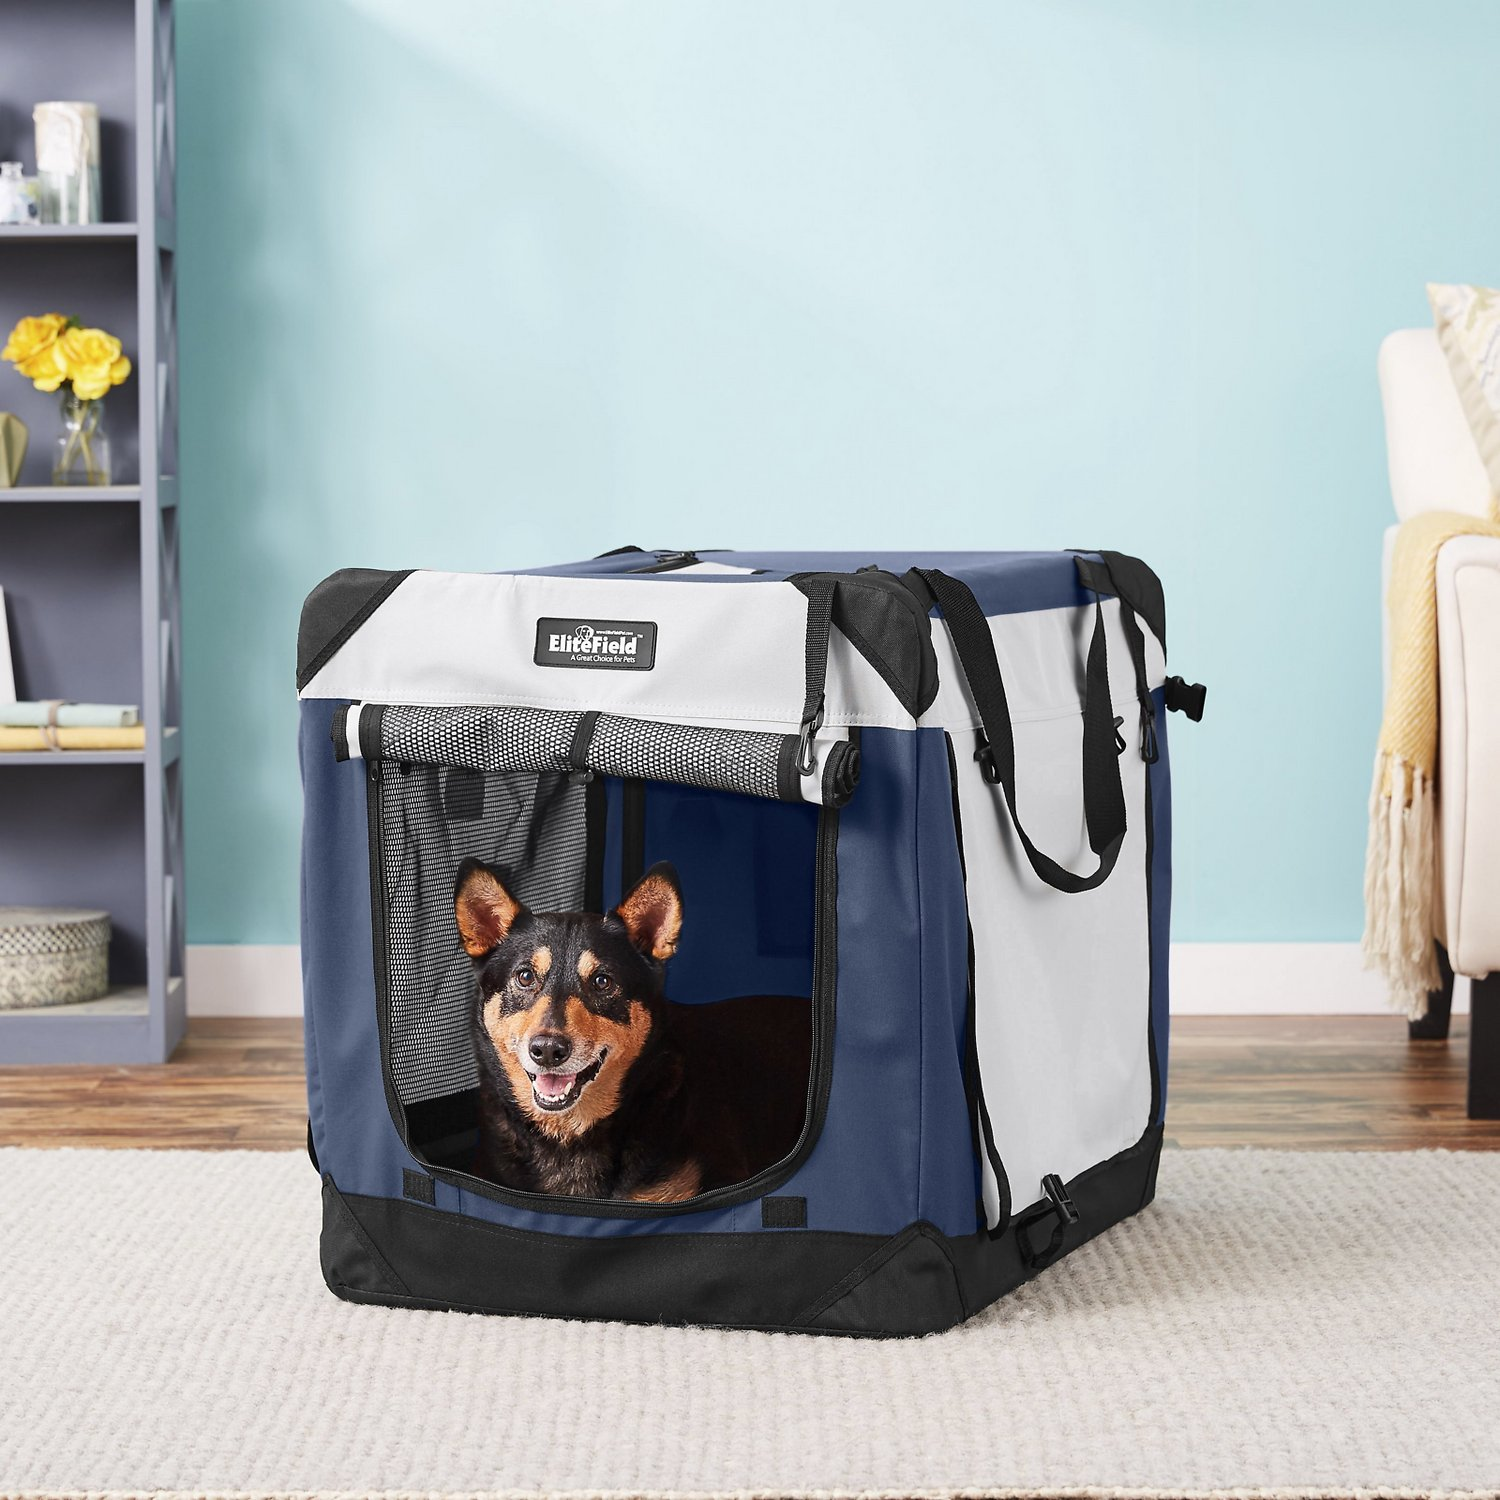 EliteField 4-Door Collapsible Soft-Sided Dog Crate